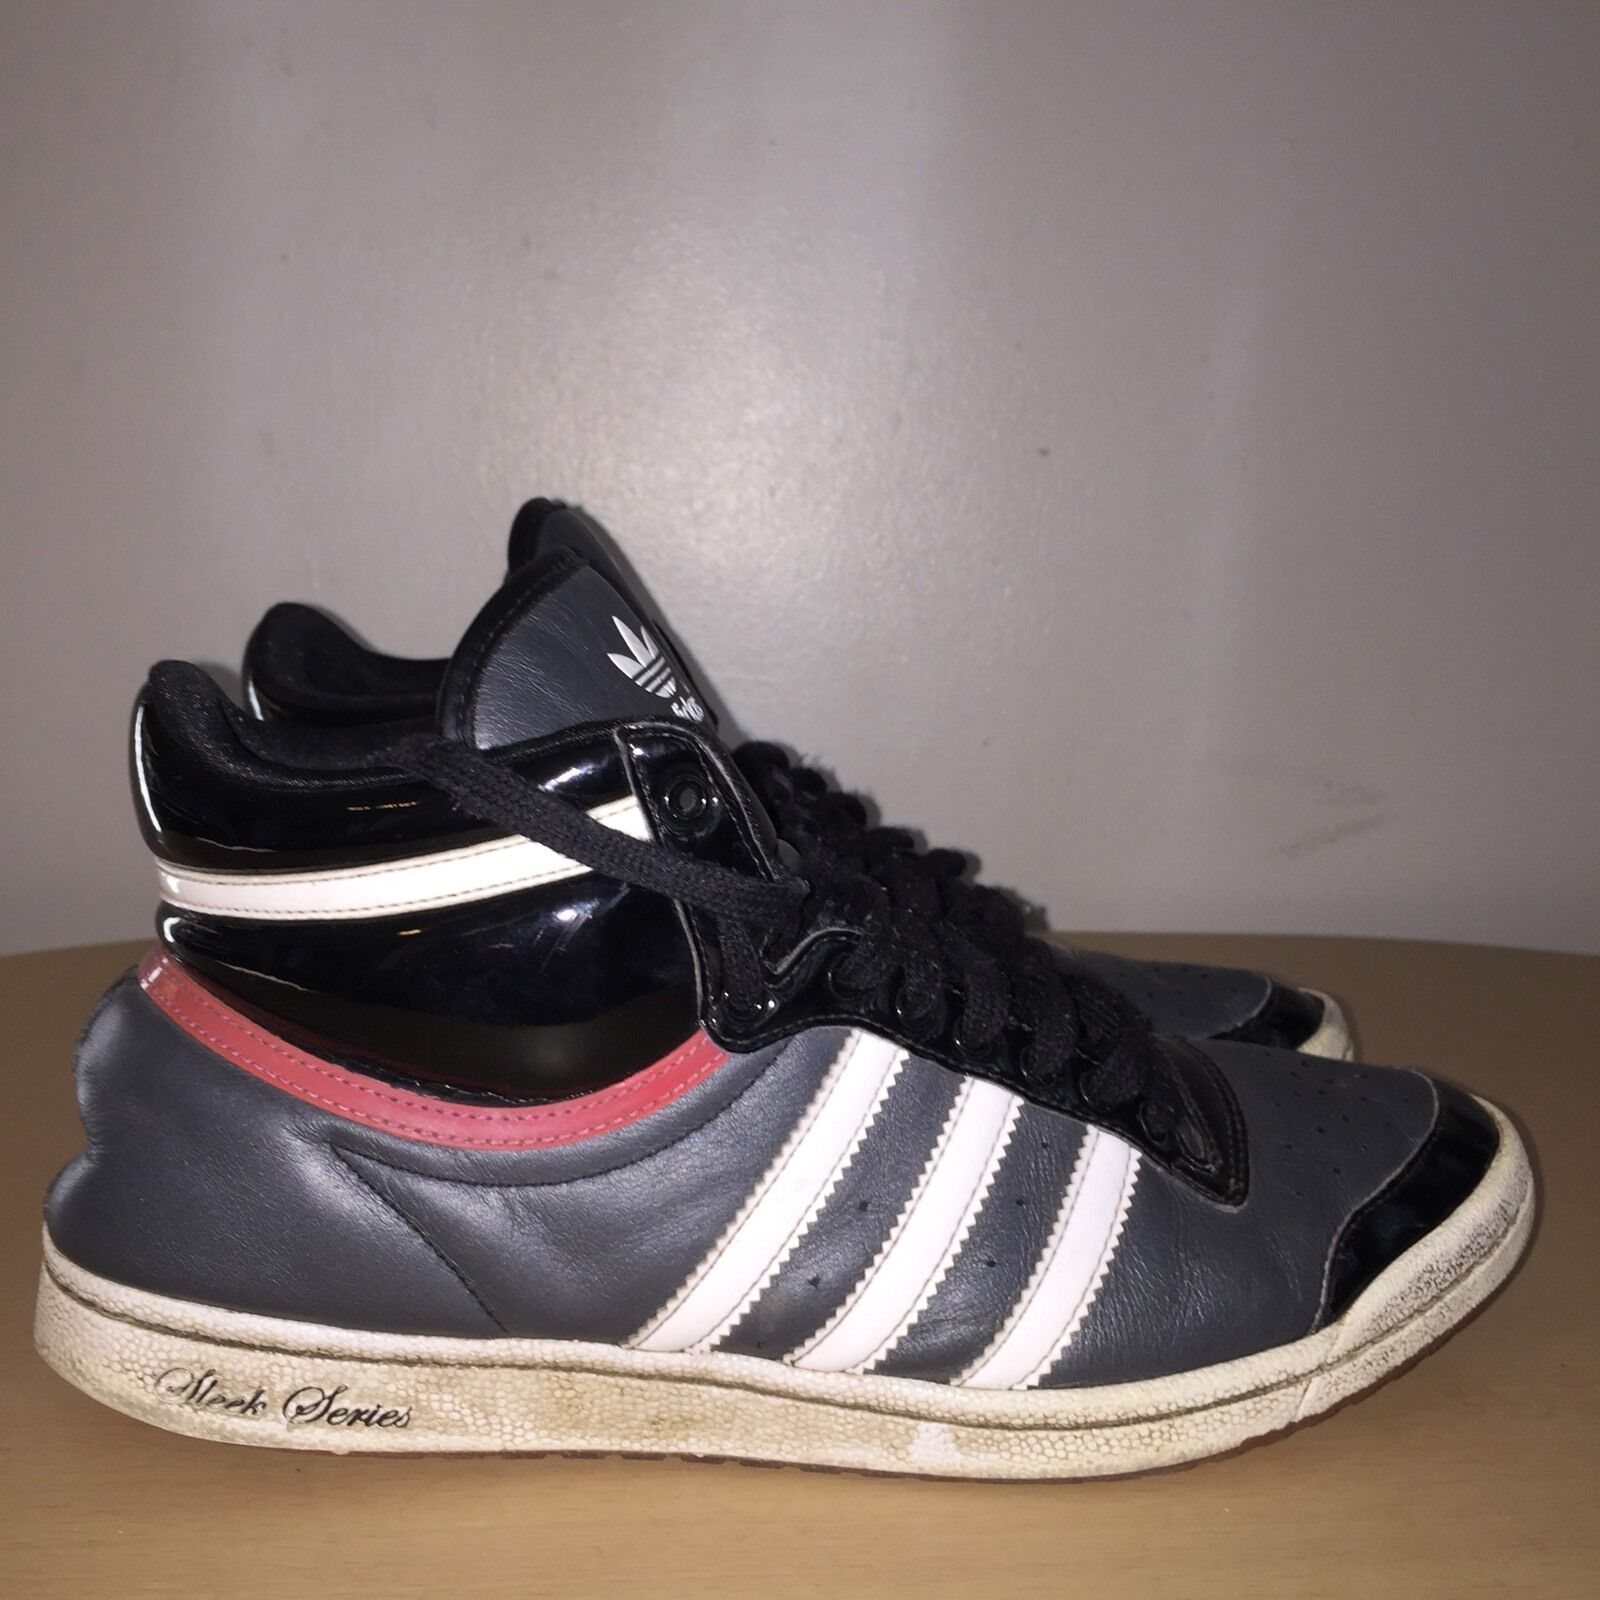 Adidas Sleek Series Size Ankle 7 Black White Red Ankle Size Boots 105ea0